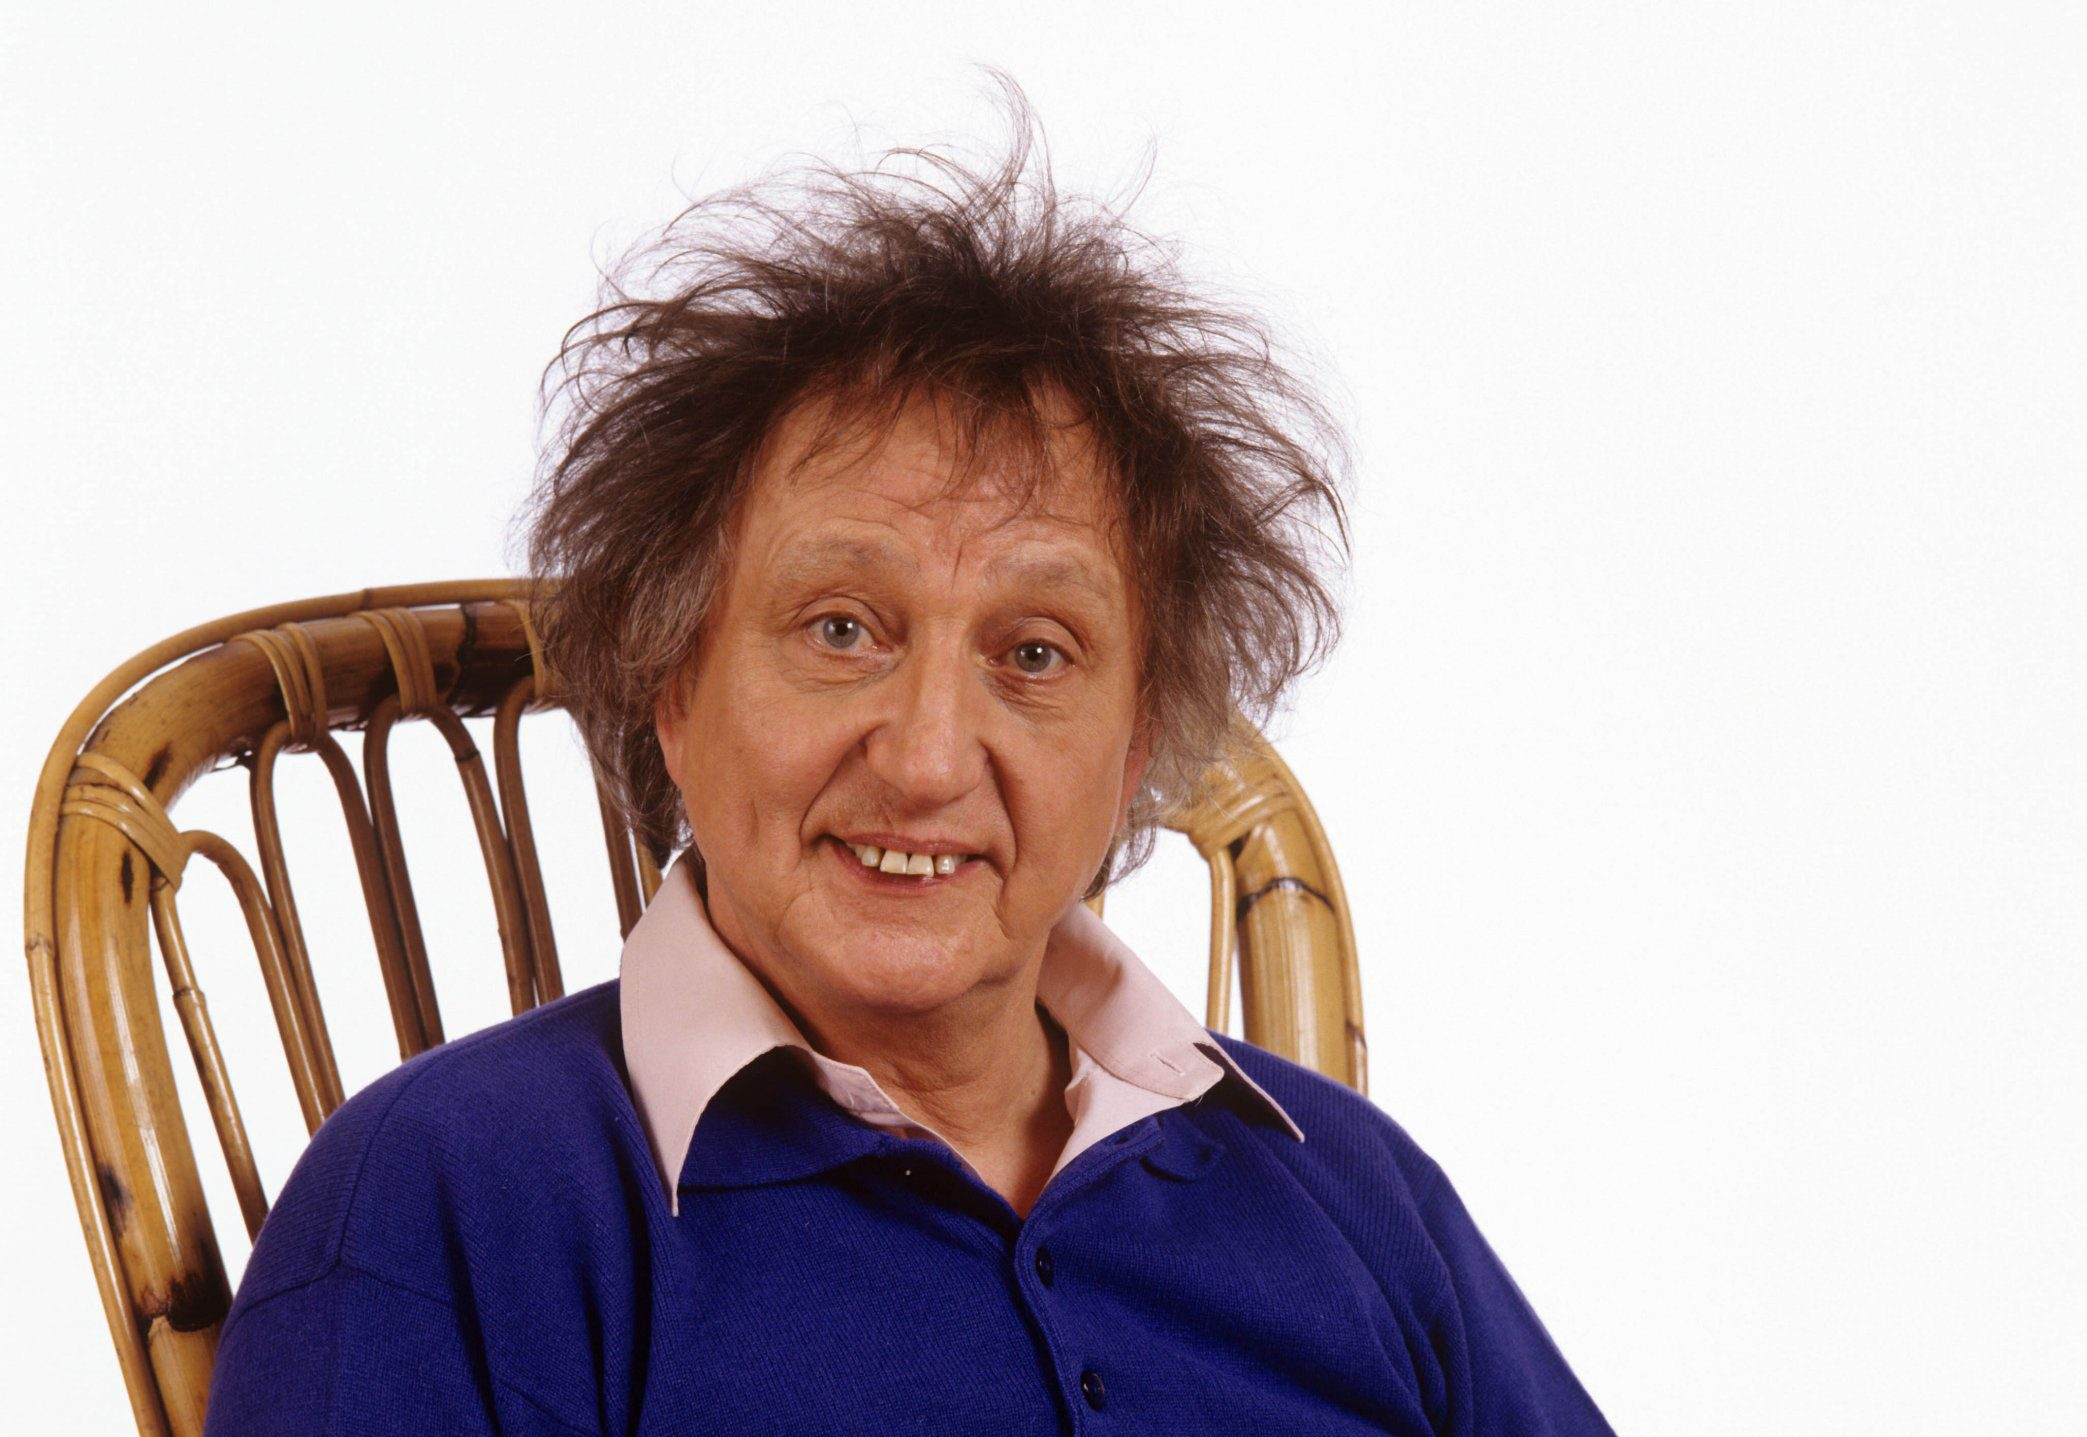 Sir Ken Dodd's greatest jokes of all time: 'I told the Inland Revenue I didn't owe a penny because I lived near the seaside'